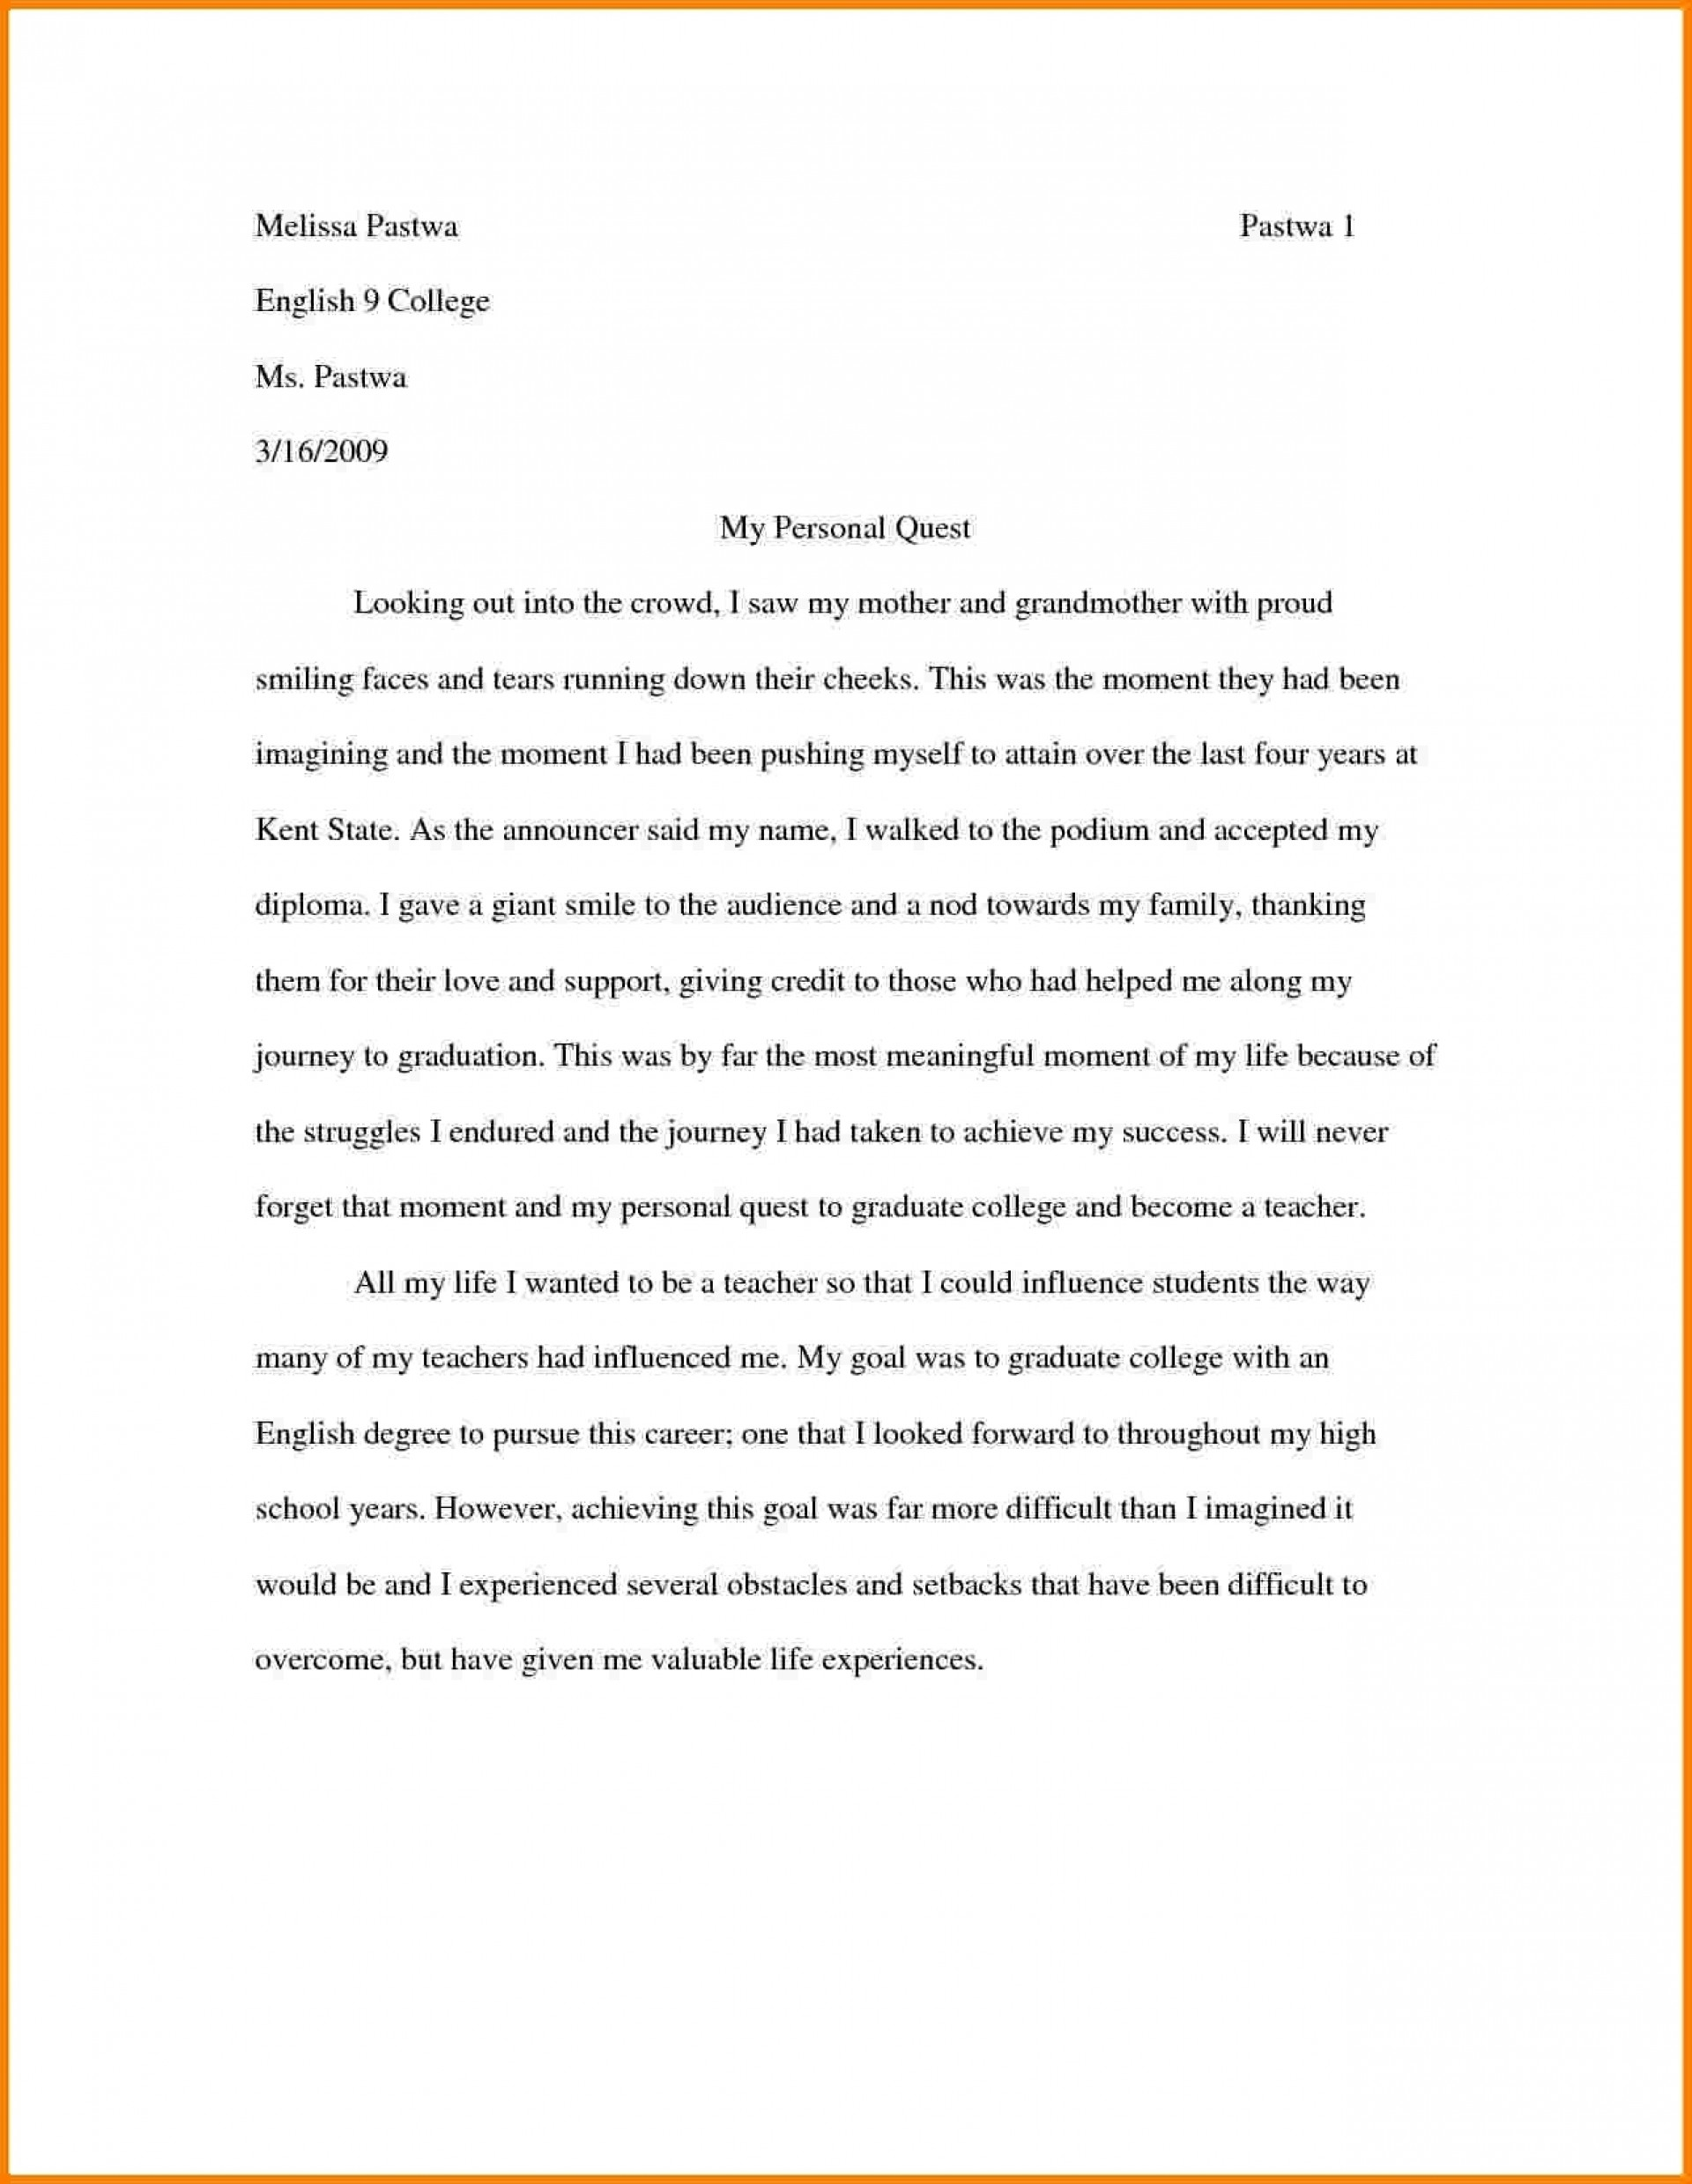 002 College Essays Essay Examples Writings And Application Example Of Philosophy Statement Case Best Frightening 2017 Prompts Boston Scholarship 1920